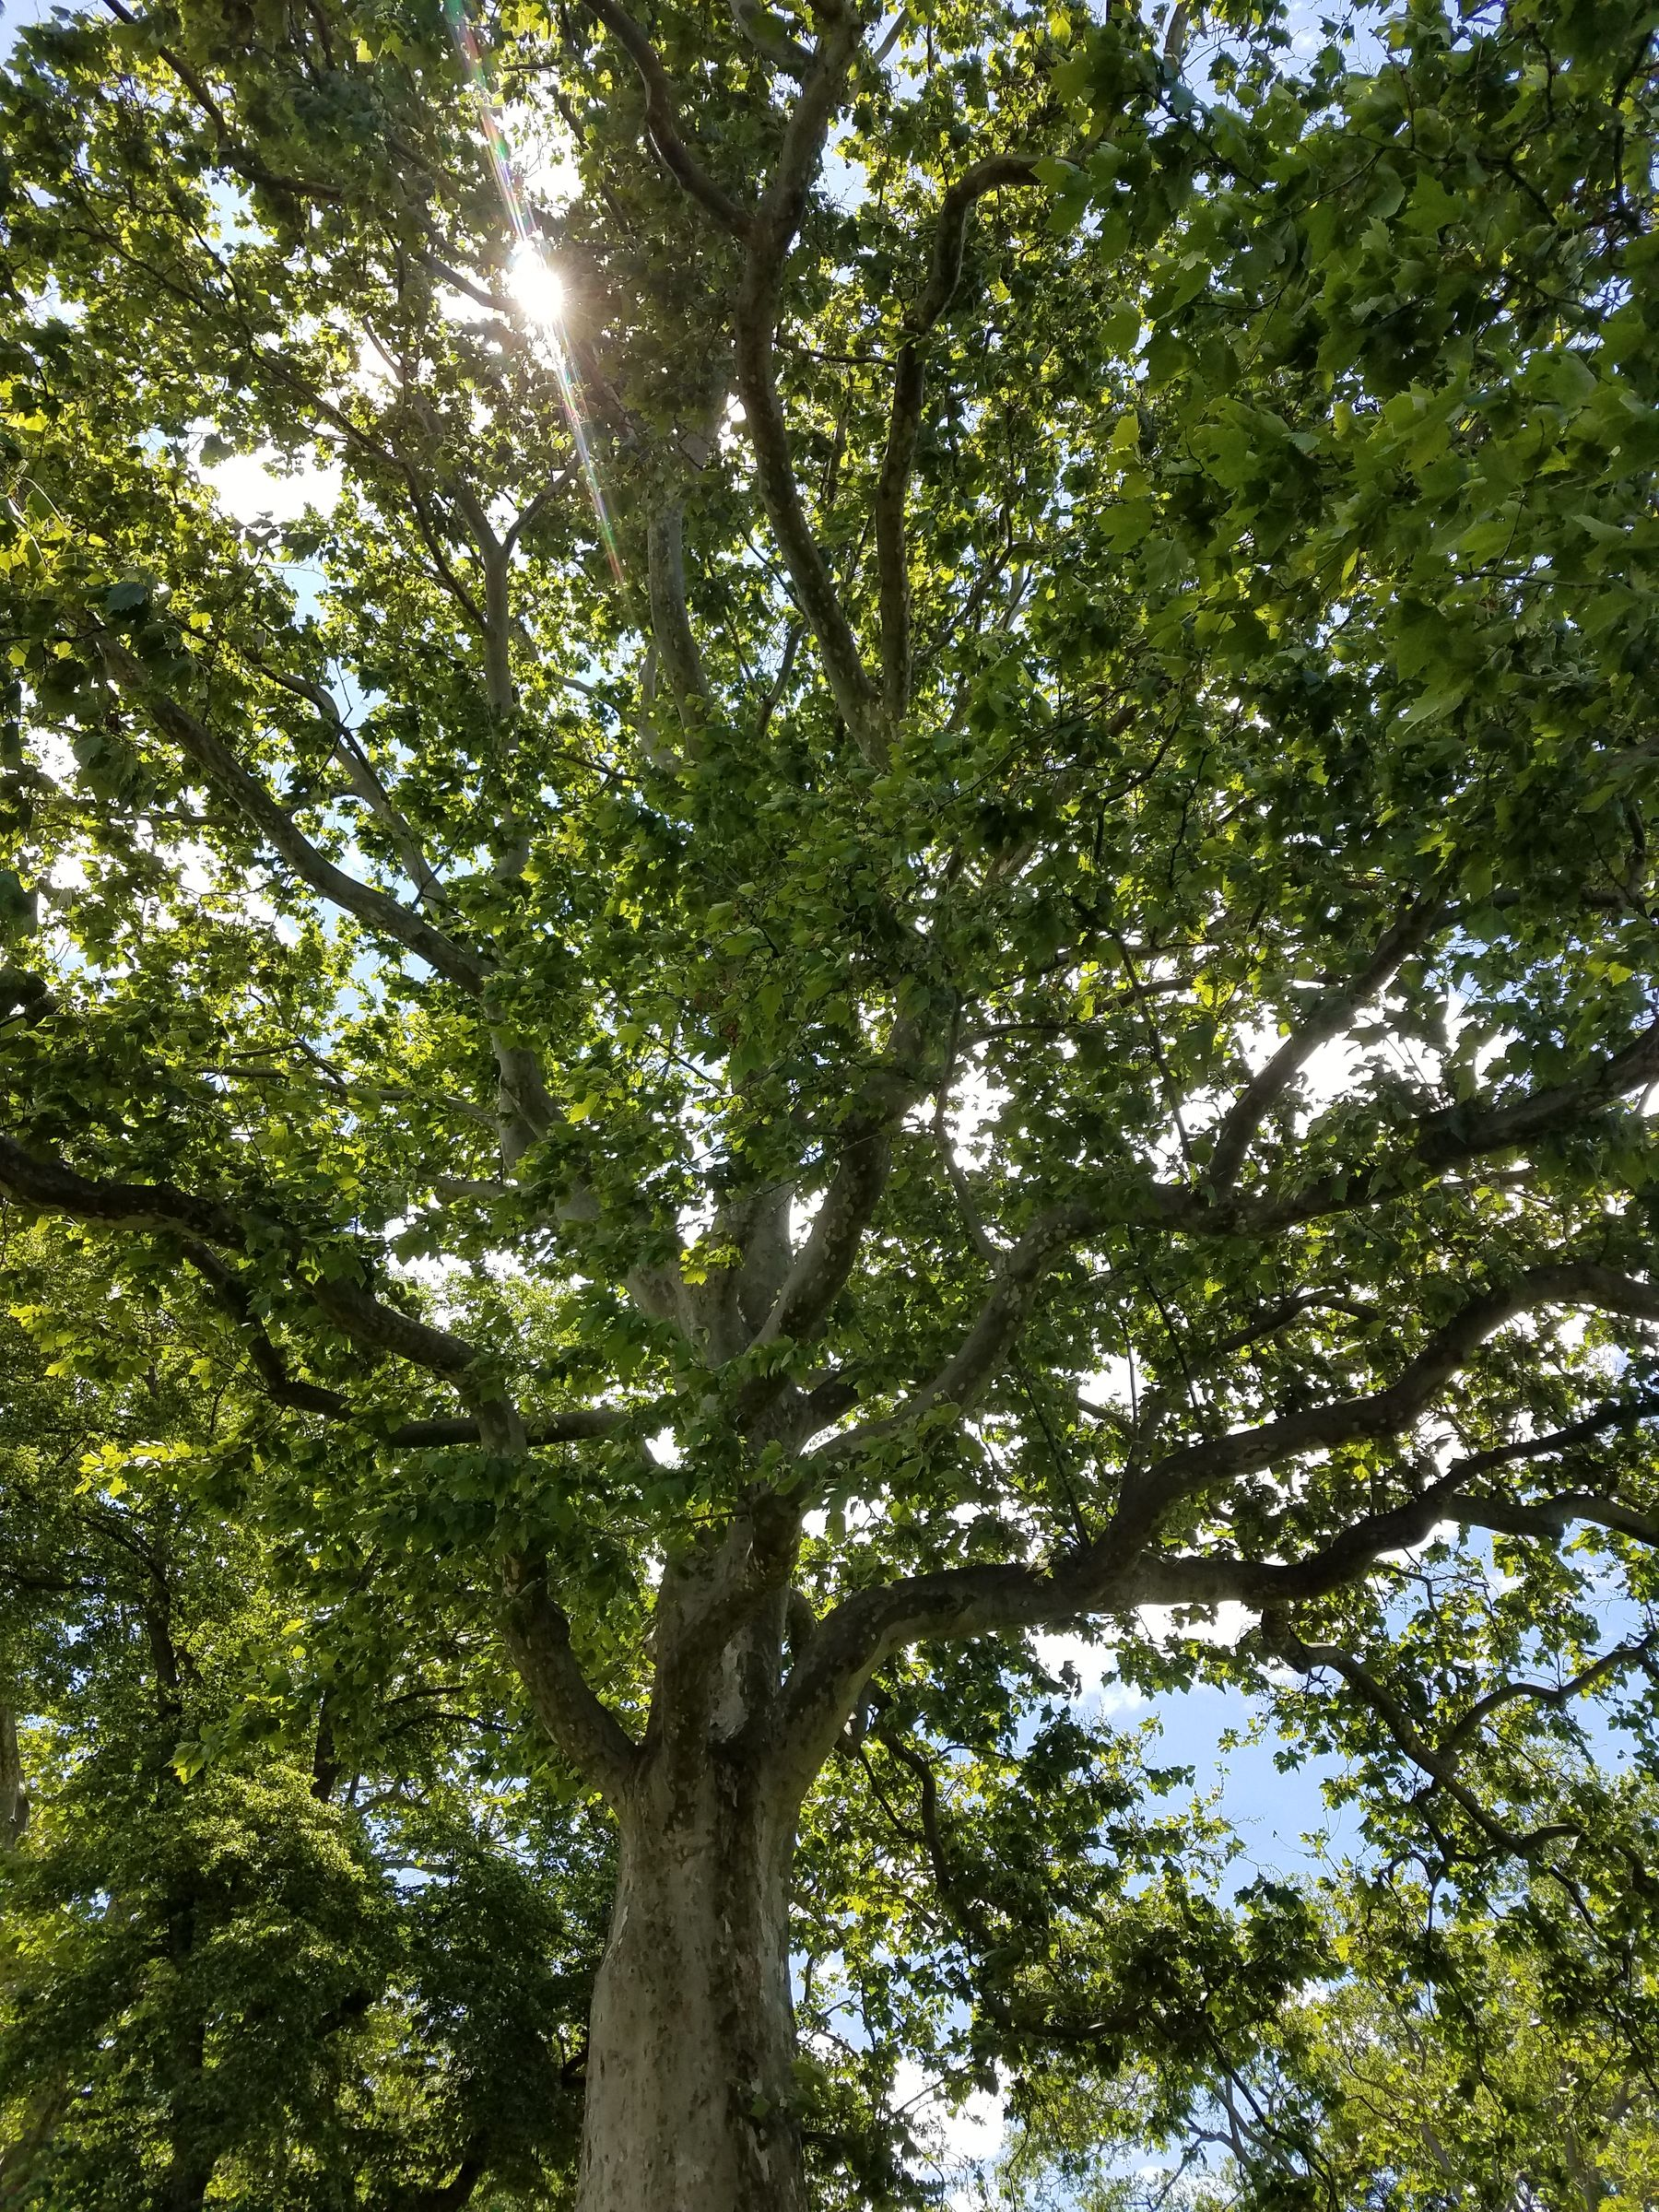 A photo under a tree with very wavy branches, looking up at its crown. The sun poked through its leaves, and there is a blue sky behind it.